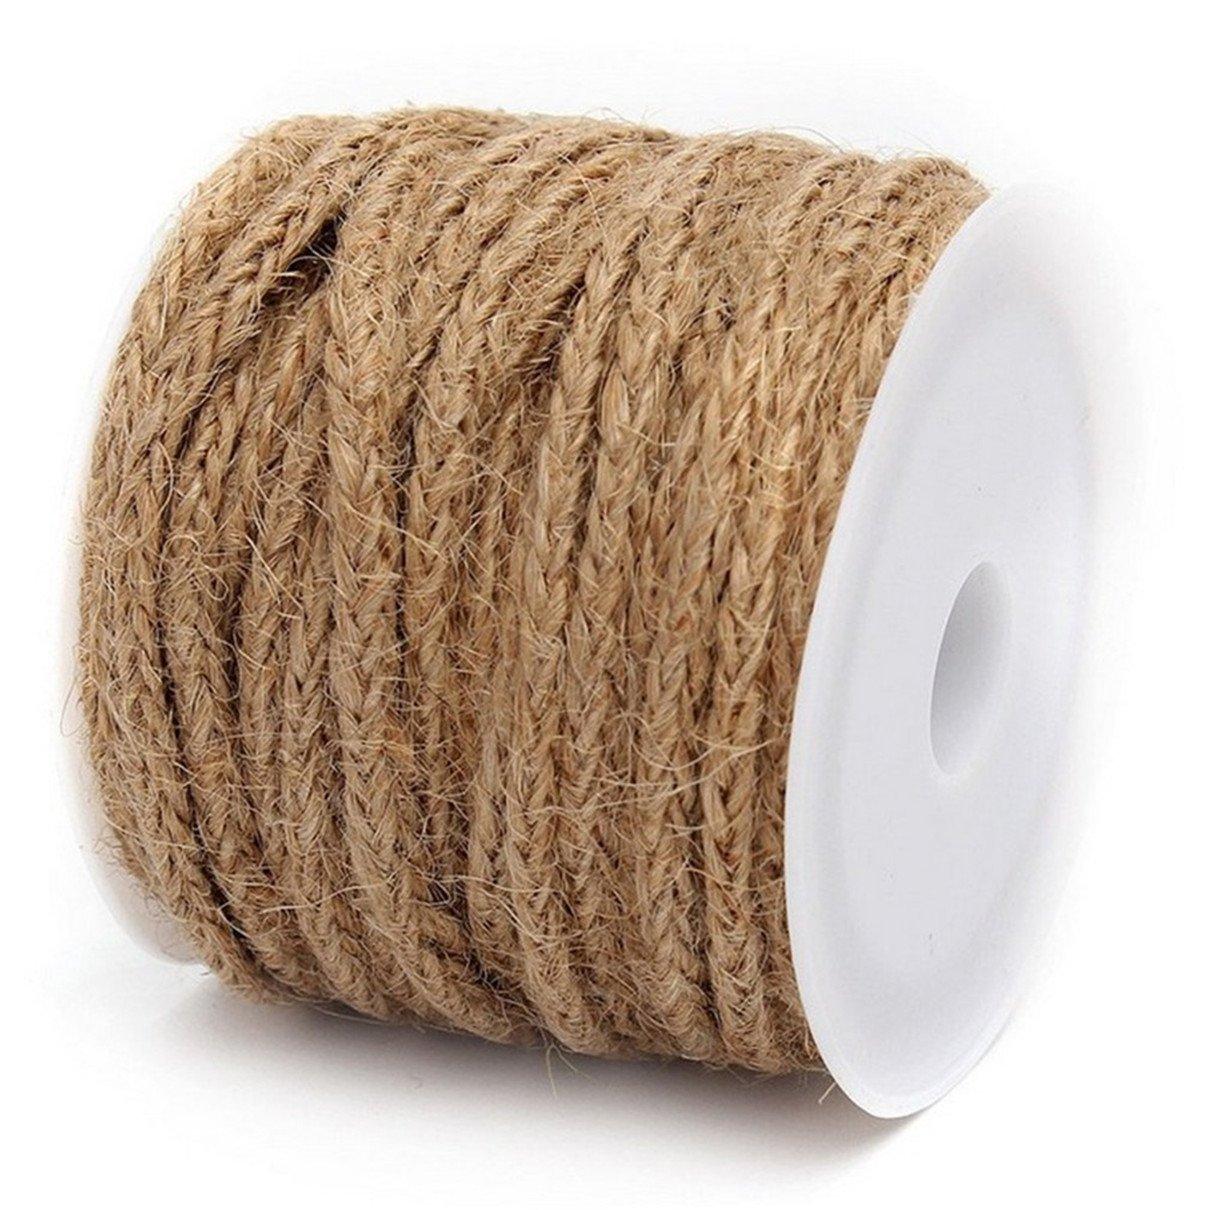 Edtoy 5M Burlap Twine Jute String Rope for Crafts Wedding Invitations DIY Projects